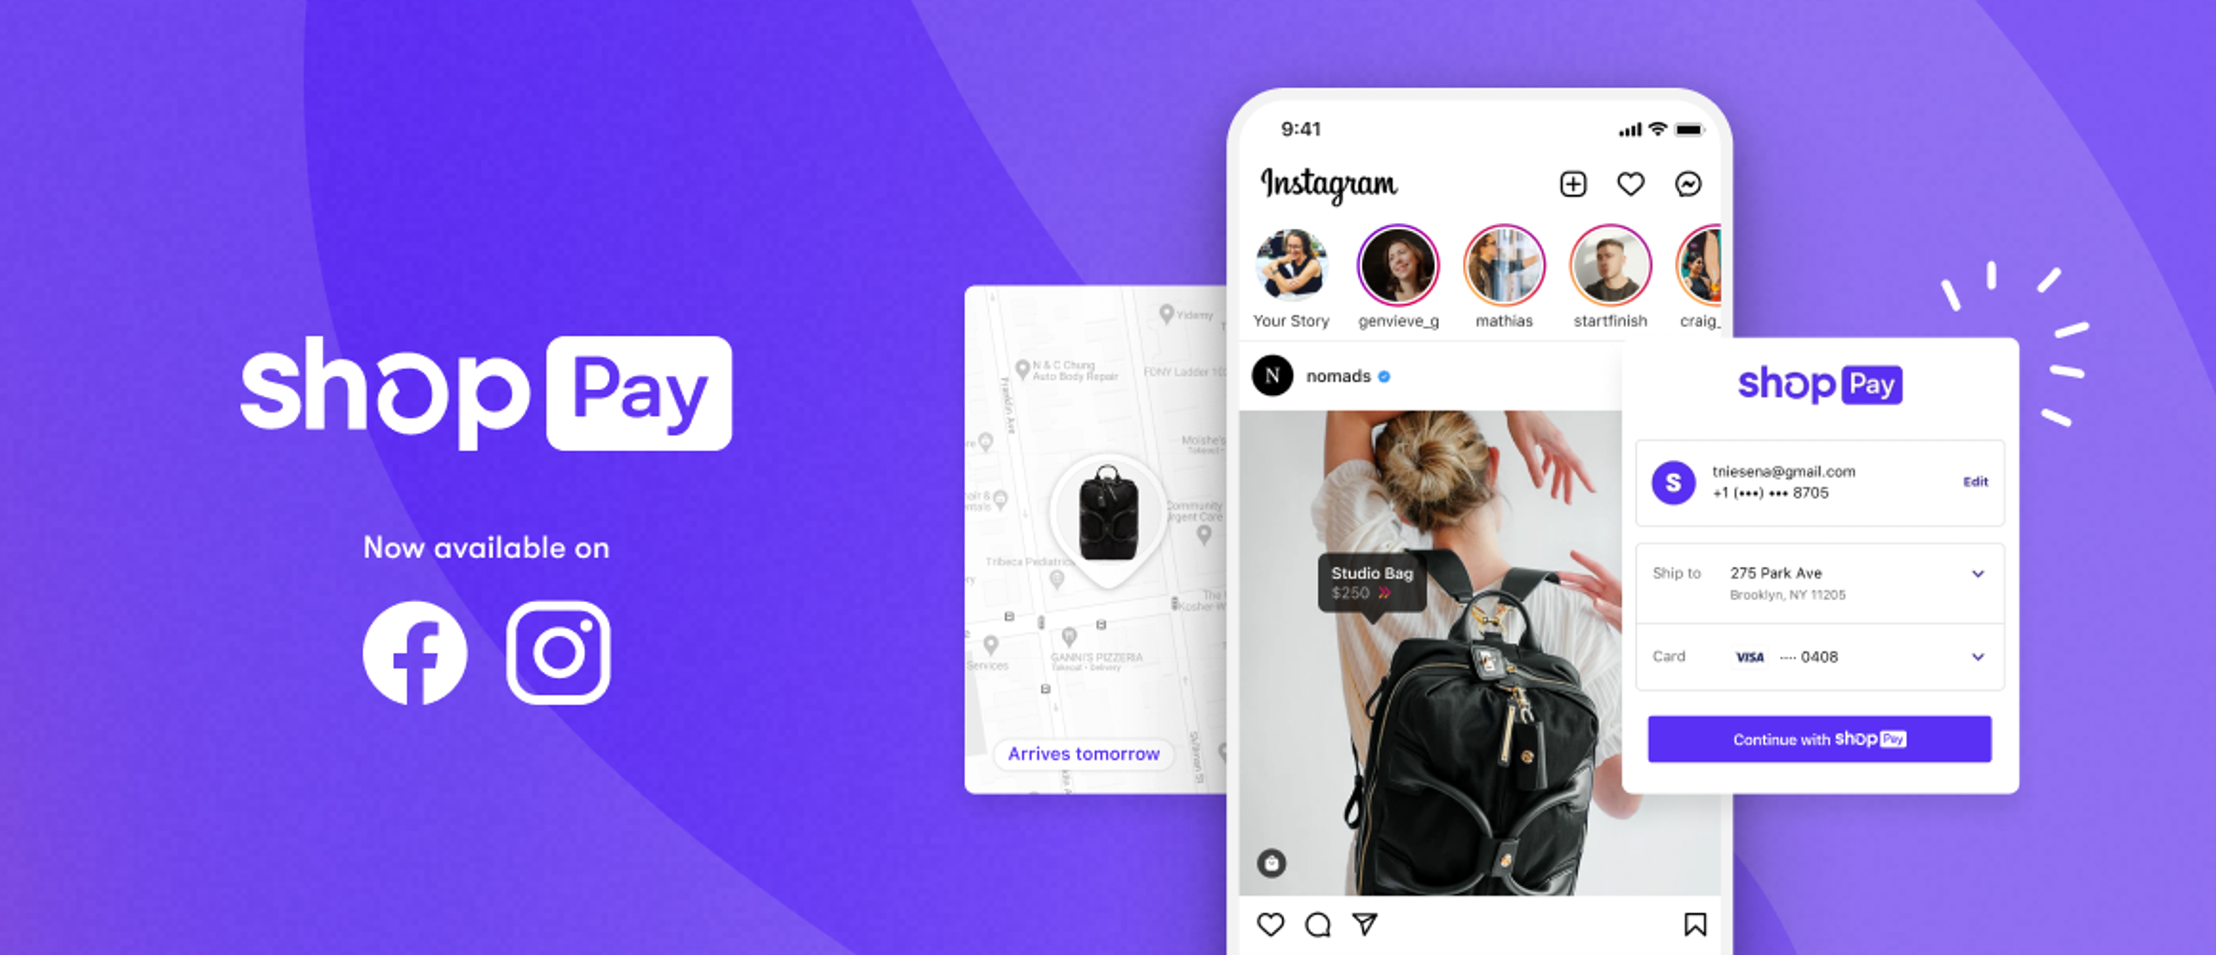 Shopify's Shop Pay heads to Facebook and Instagram.